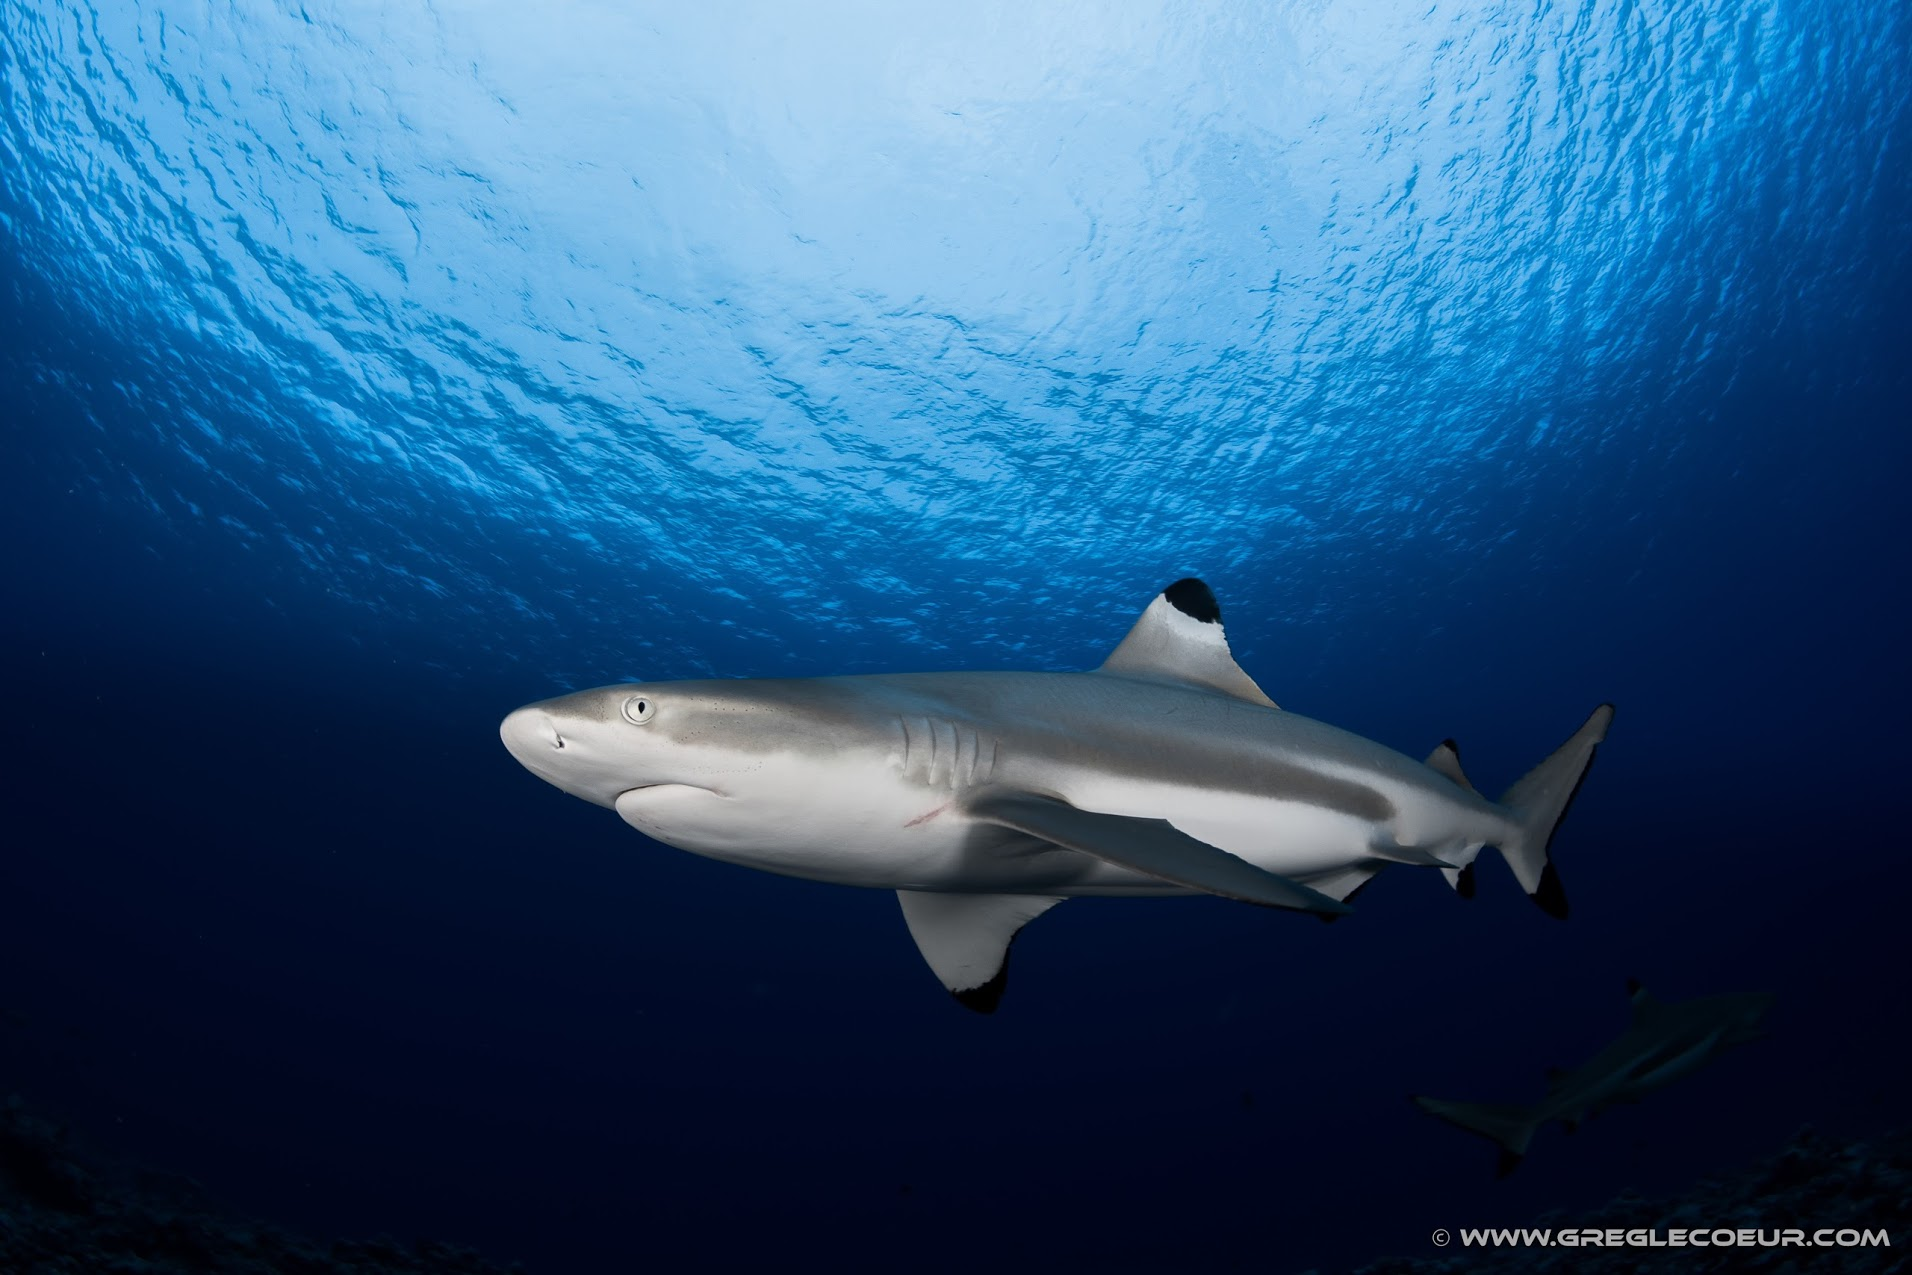 Black tip shark in French Polynesia © greglecoeur